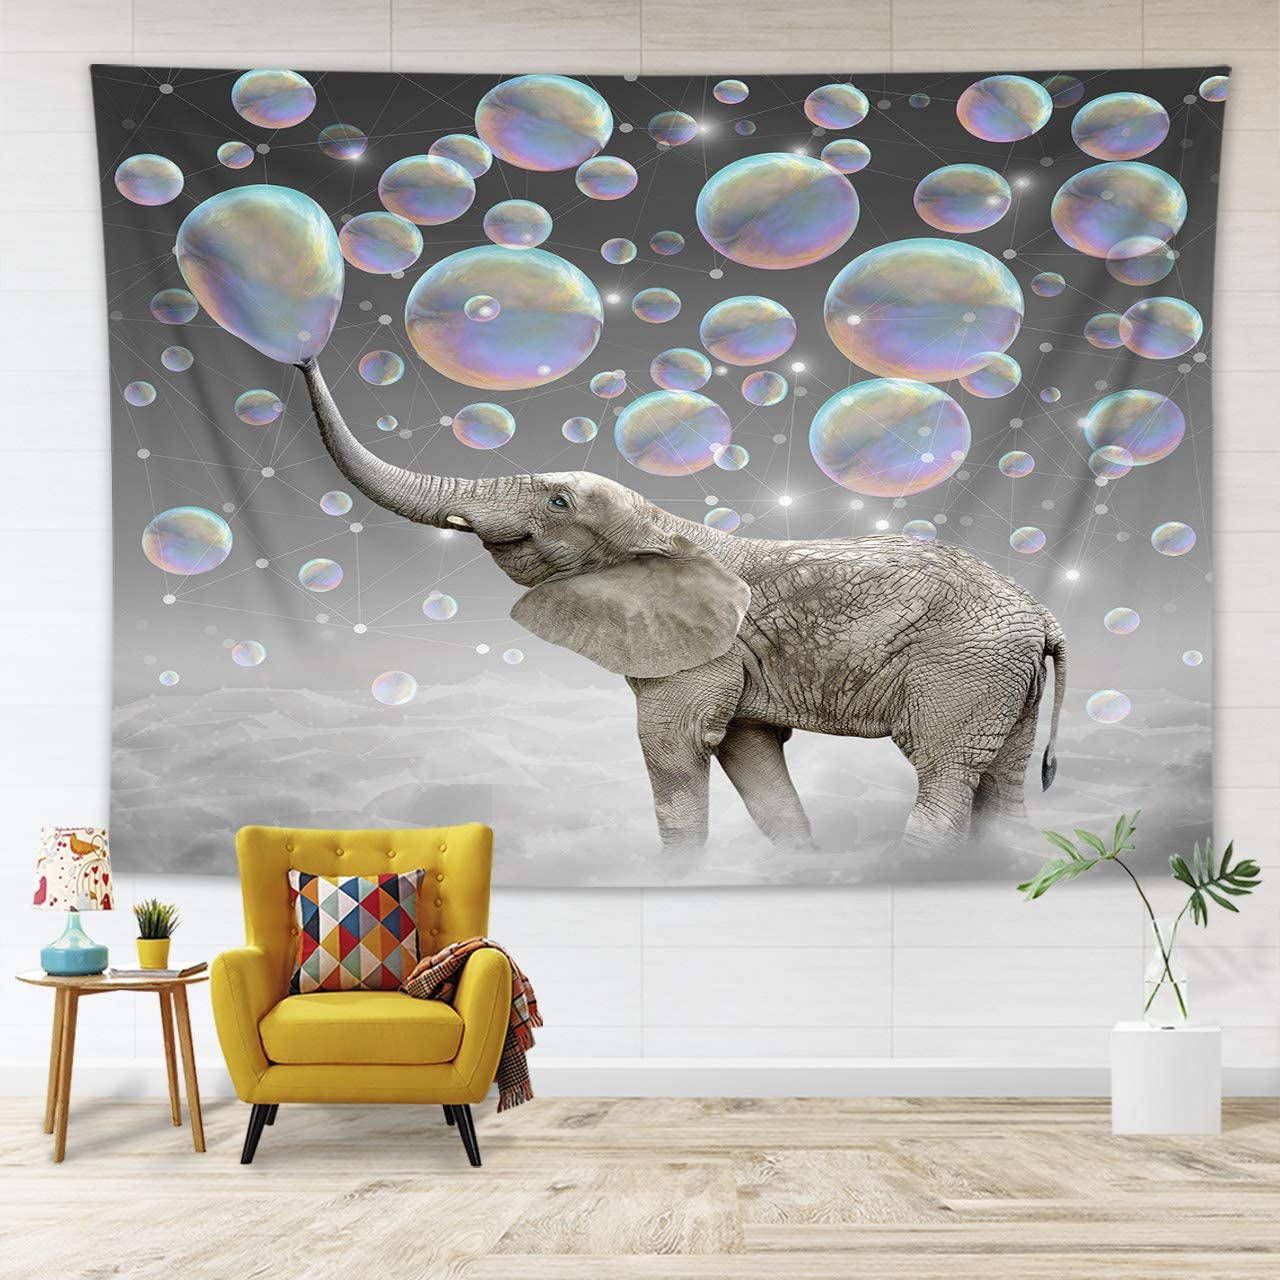 HVEST Animal Elephant Tapestry Cute Funny African Wild Hunting Elephant Spit Bubble Tapestries for Living Room Bedroom Dorm Home Party Child Indie Room Decor Poster ,60x40 Inches